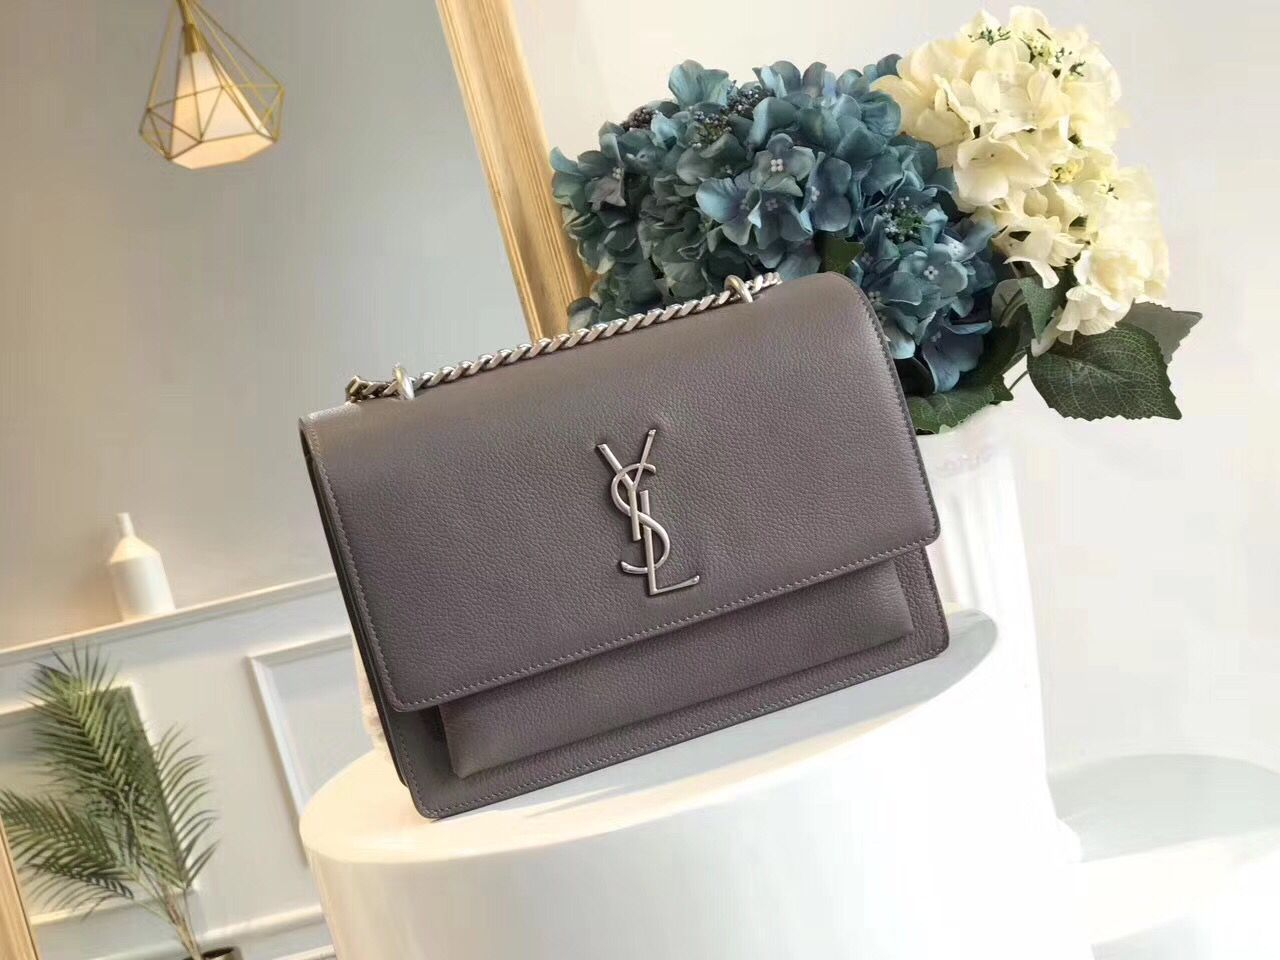 Yves Saint Laurent Cross-body Original Leatehr Shoulder Bag Y8607 Grey